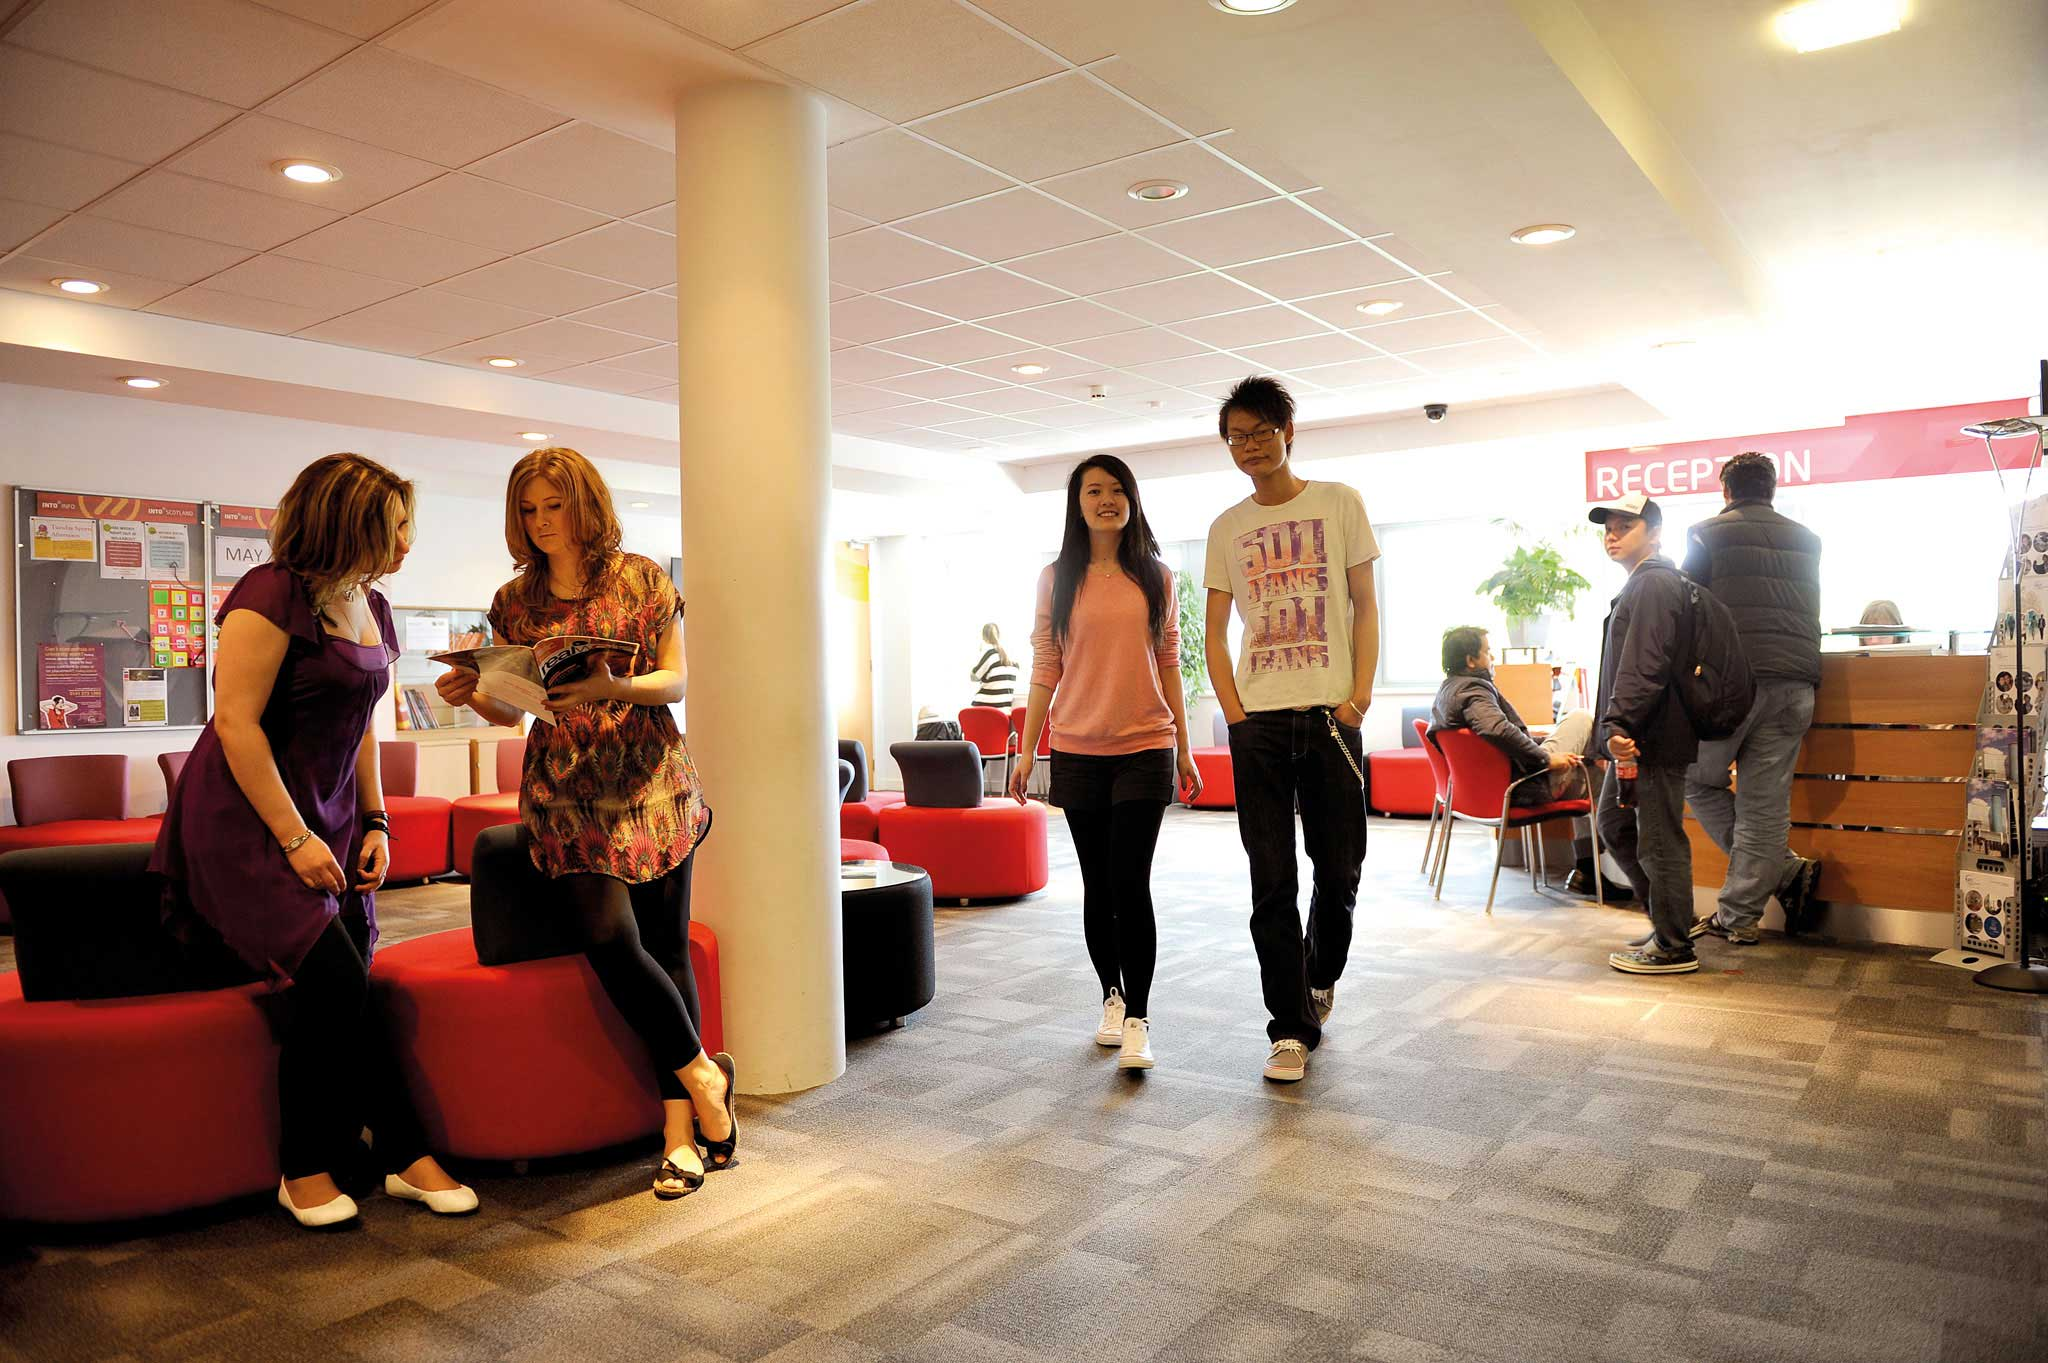 The INTO GCU Centre reception area